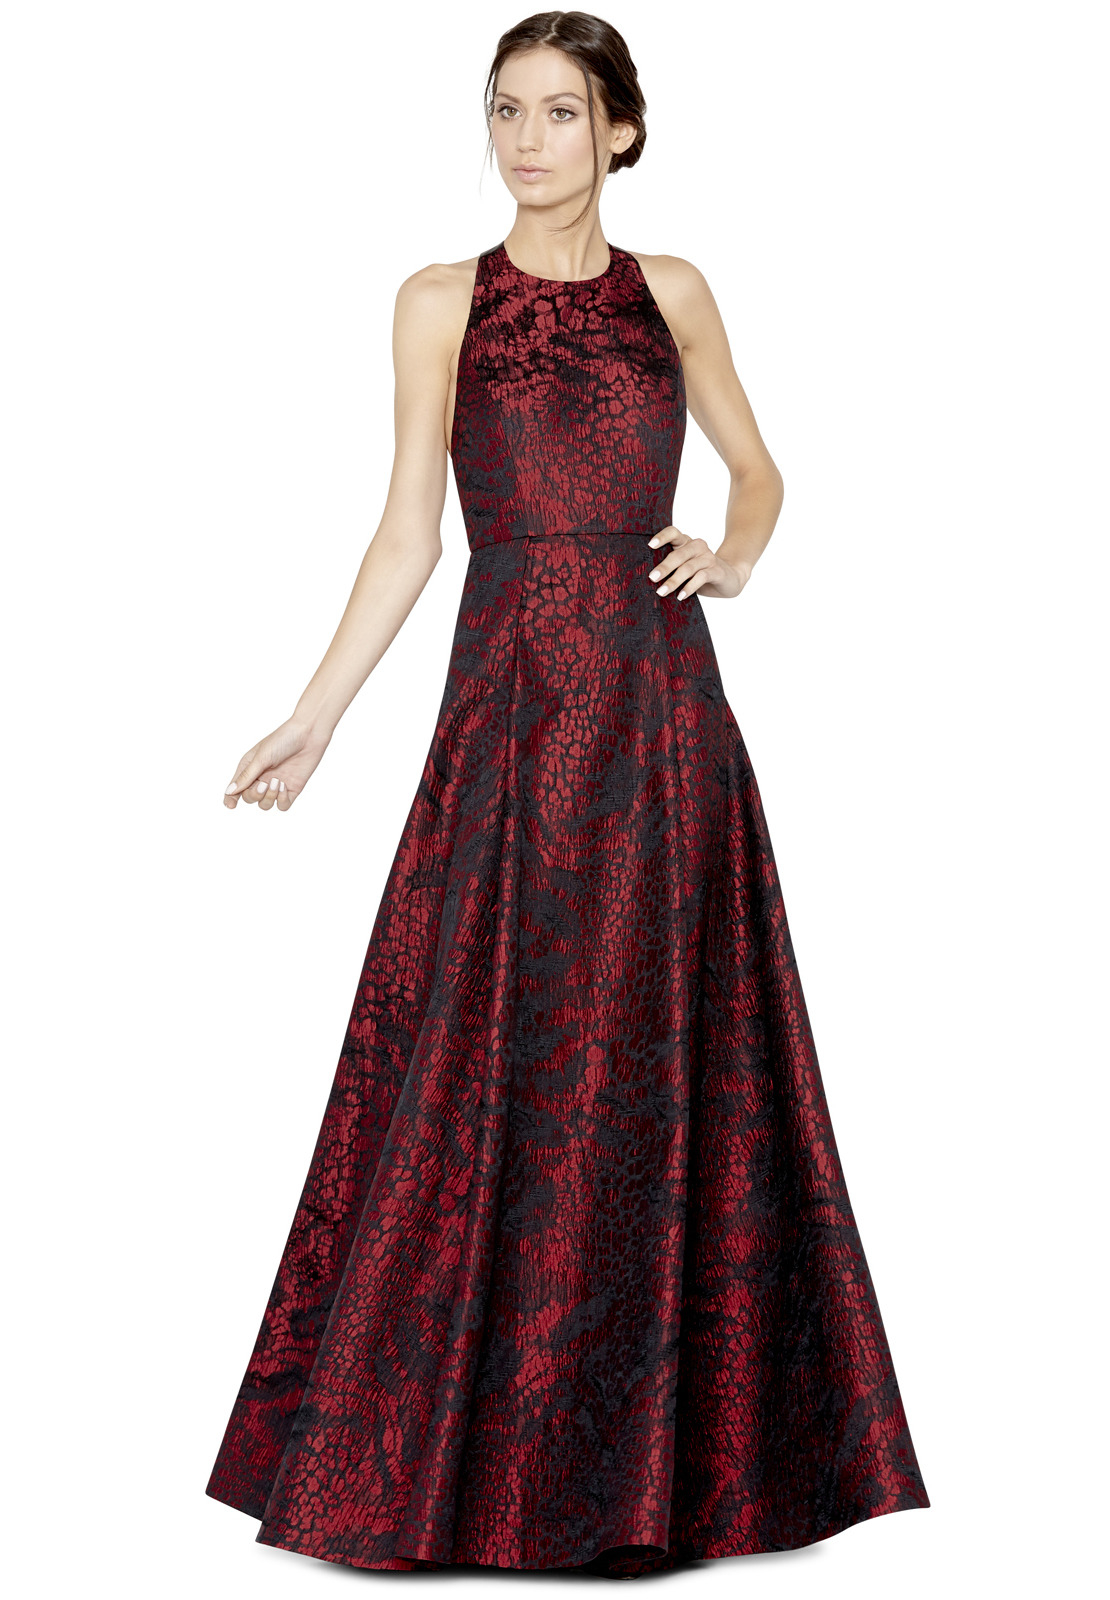 Lyst - Alice + Olivia Teifer Leather T-back Gown in Red